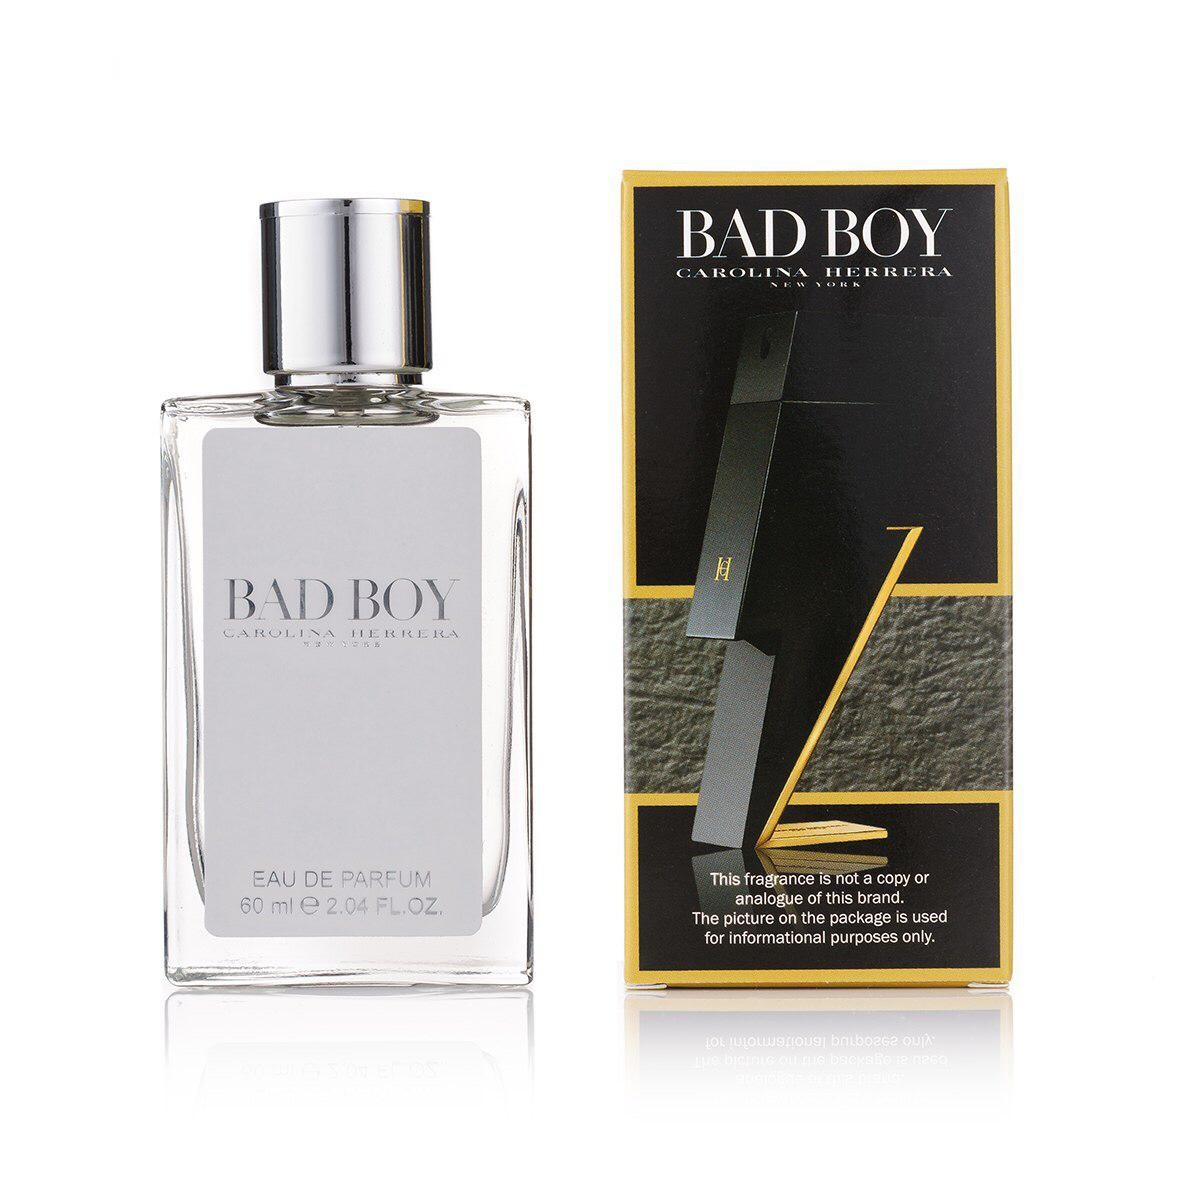 Carolina Herrera Bad Boy edp 60 ml tester color box